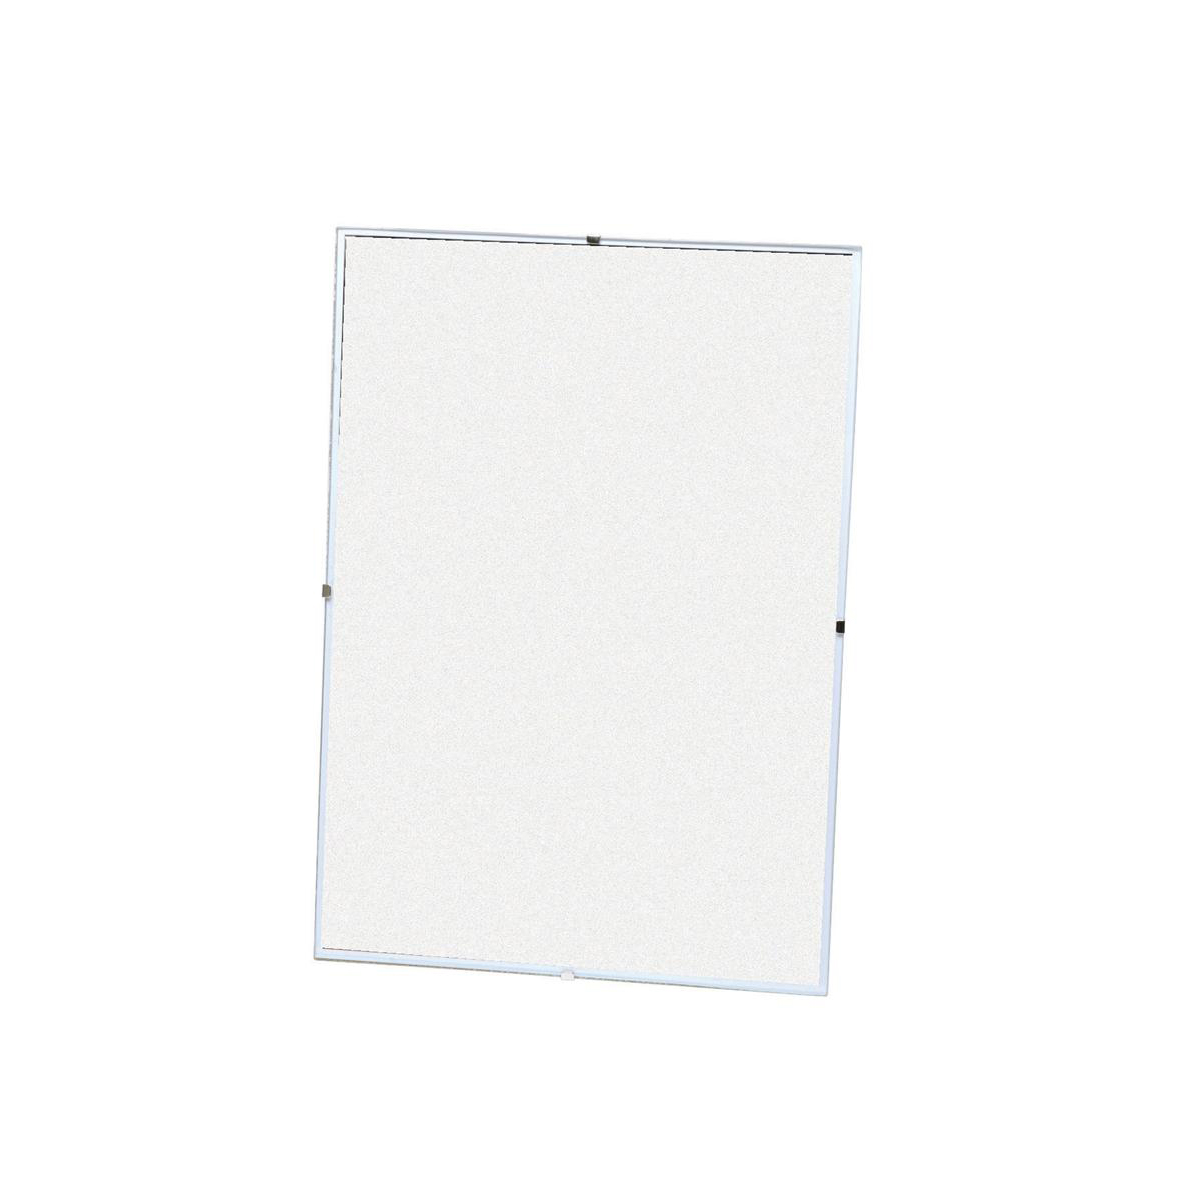 A2 White Frame 5 Star Office Clip Frame Plastic Front For Wall Mounting Back